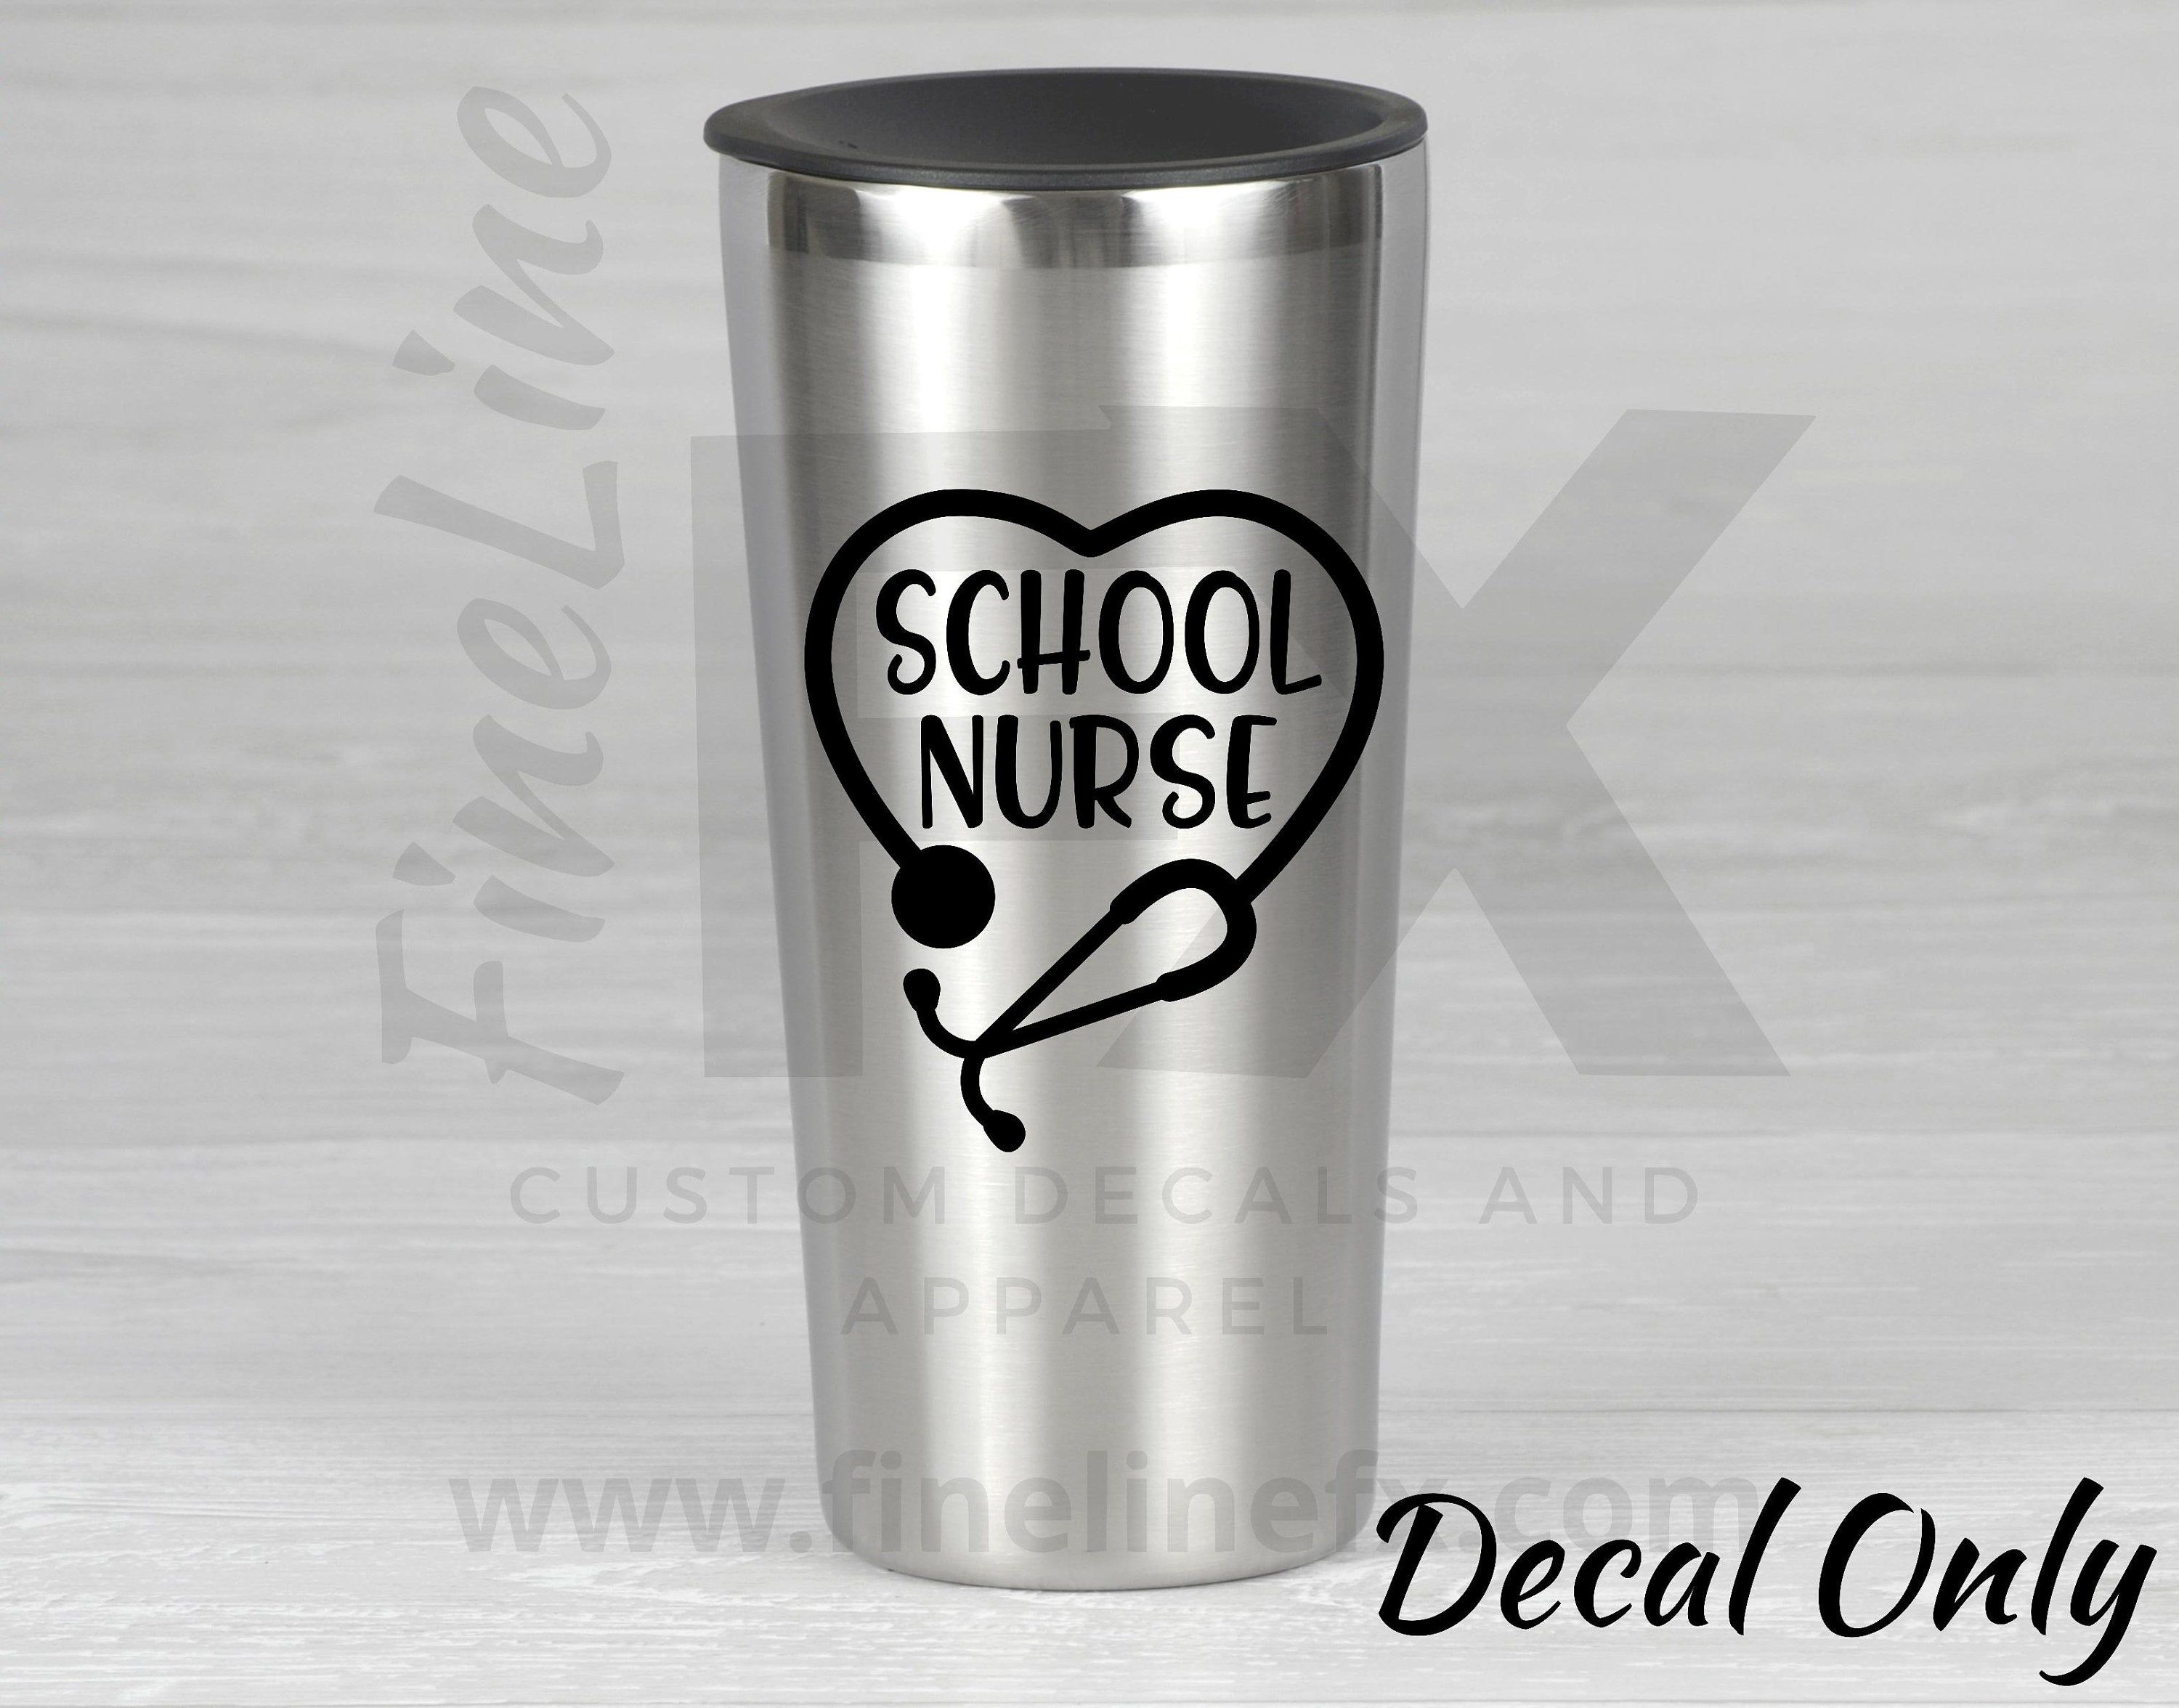 School Nurse Stethoscope Vinyl Decal Sticker Decal For Cars Laptops Tumblers And More Vinyl Decal Stickers Vinyl Decals Stethoscope Decal [ 2352 x 3000 Pixel ]